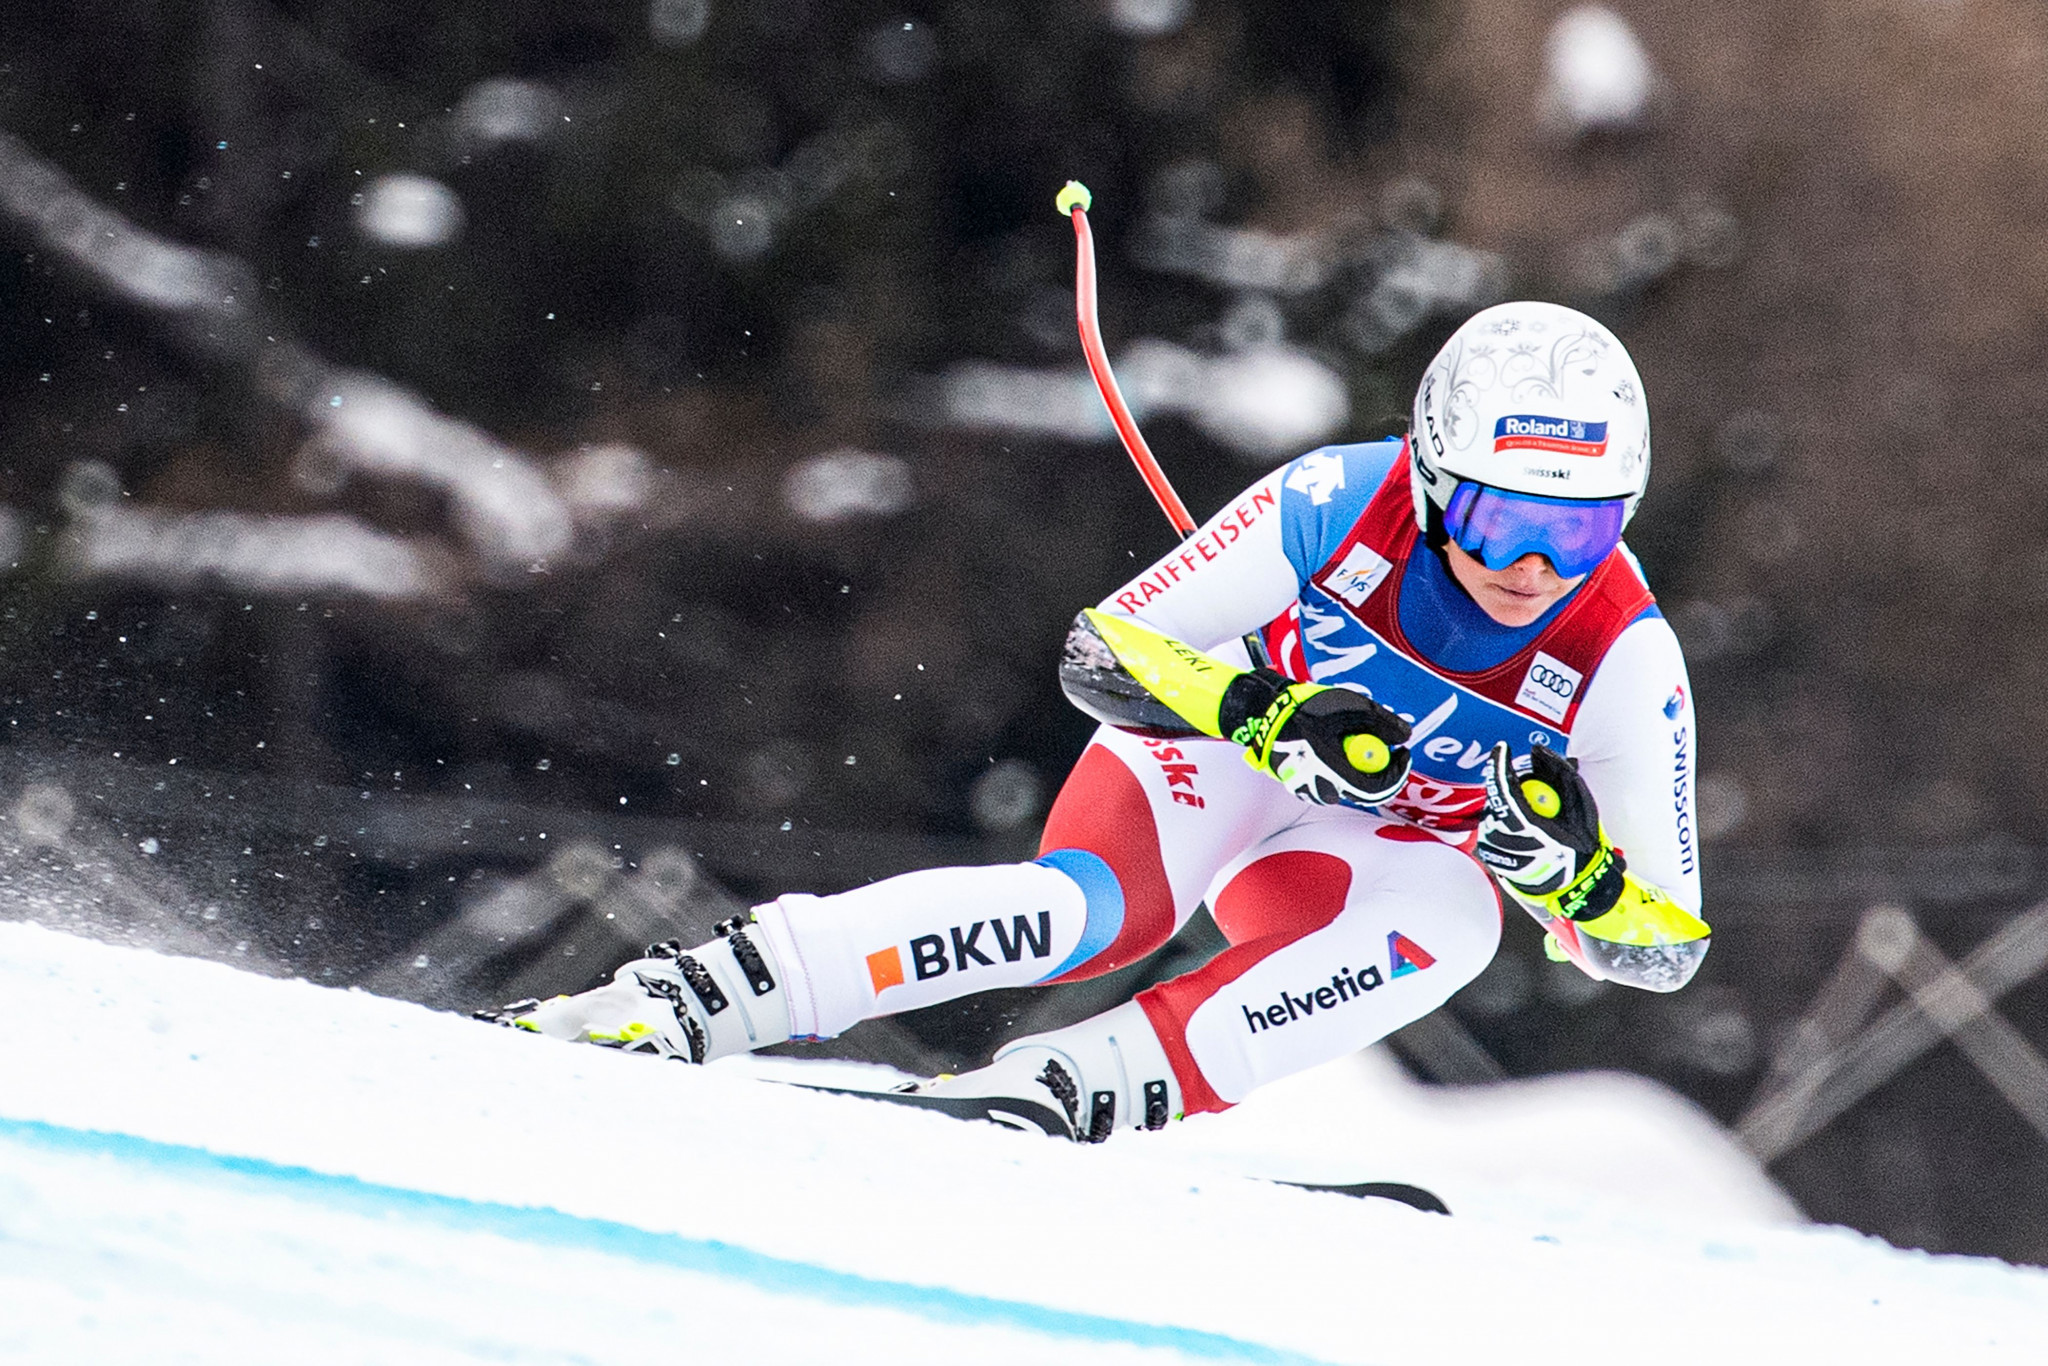 Val d'Isere to host opening downhill and super-G events of women's Alpine World Cup season